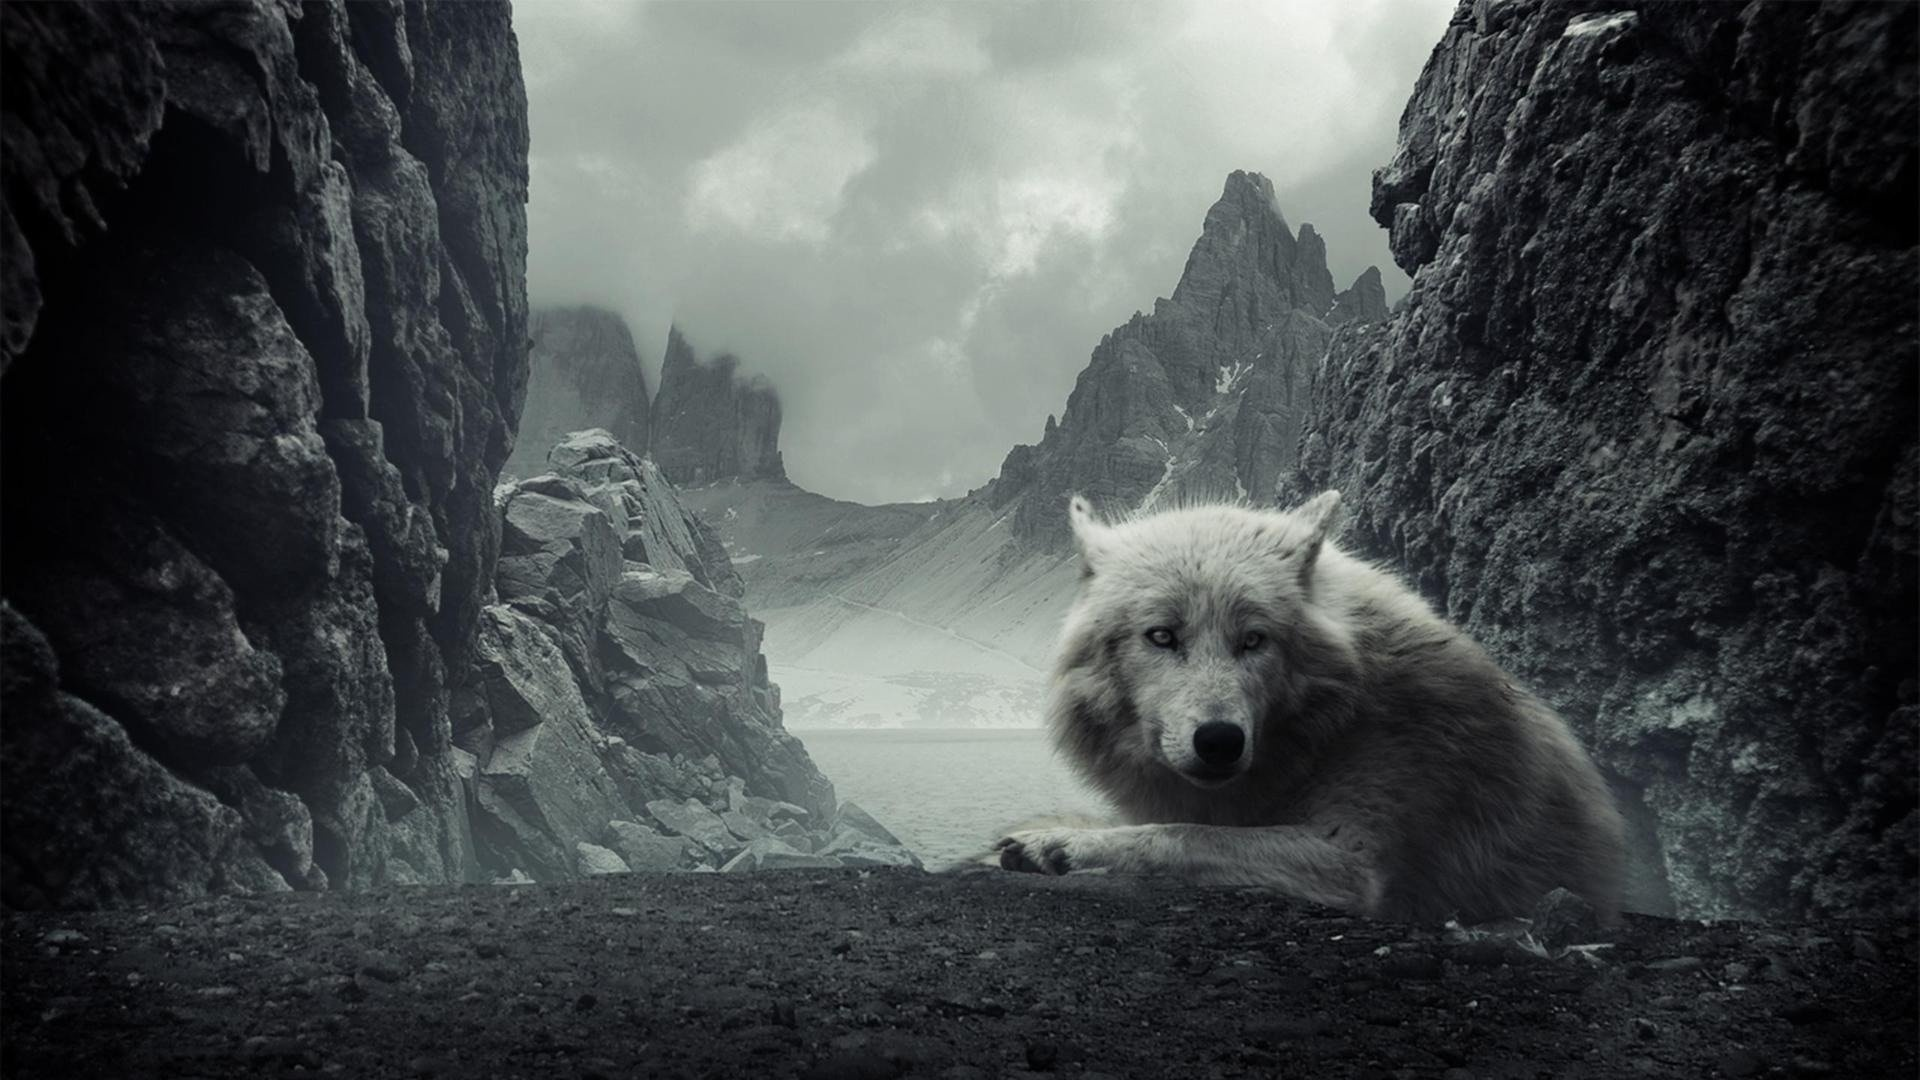 wallpapers background amazing cool hd awesome backgrounds wolf dark wolves hdblackwallpaper